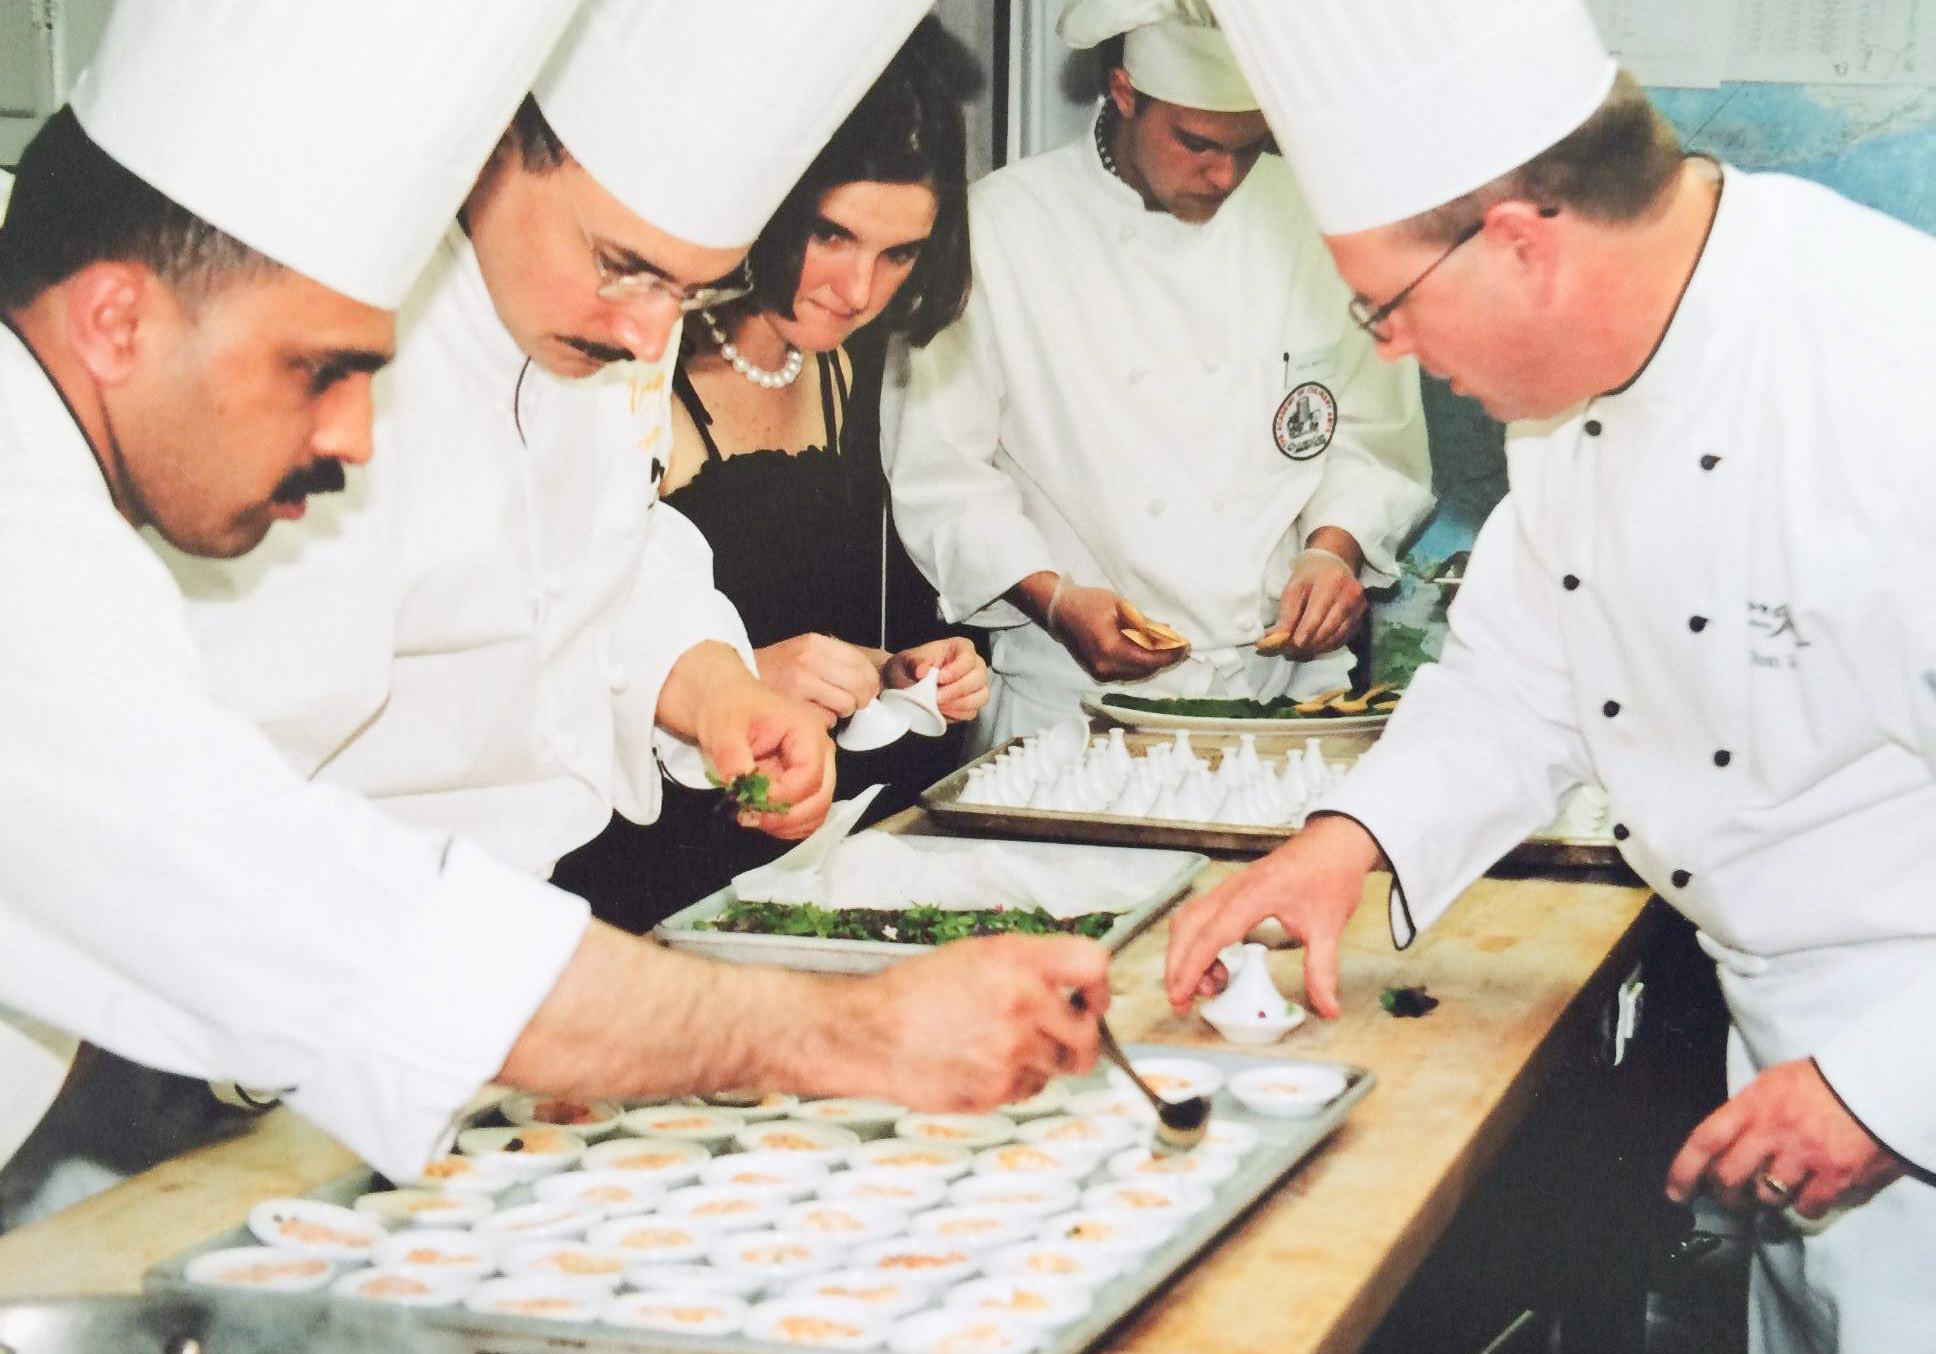 Inez prepares a James Beard Dinner, fine-tuning her culinary skills after graduating from the Institute of Culinary Education